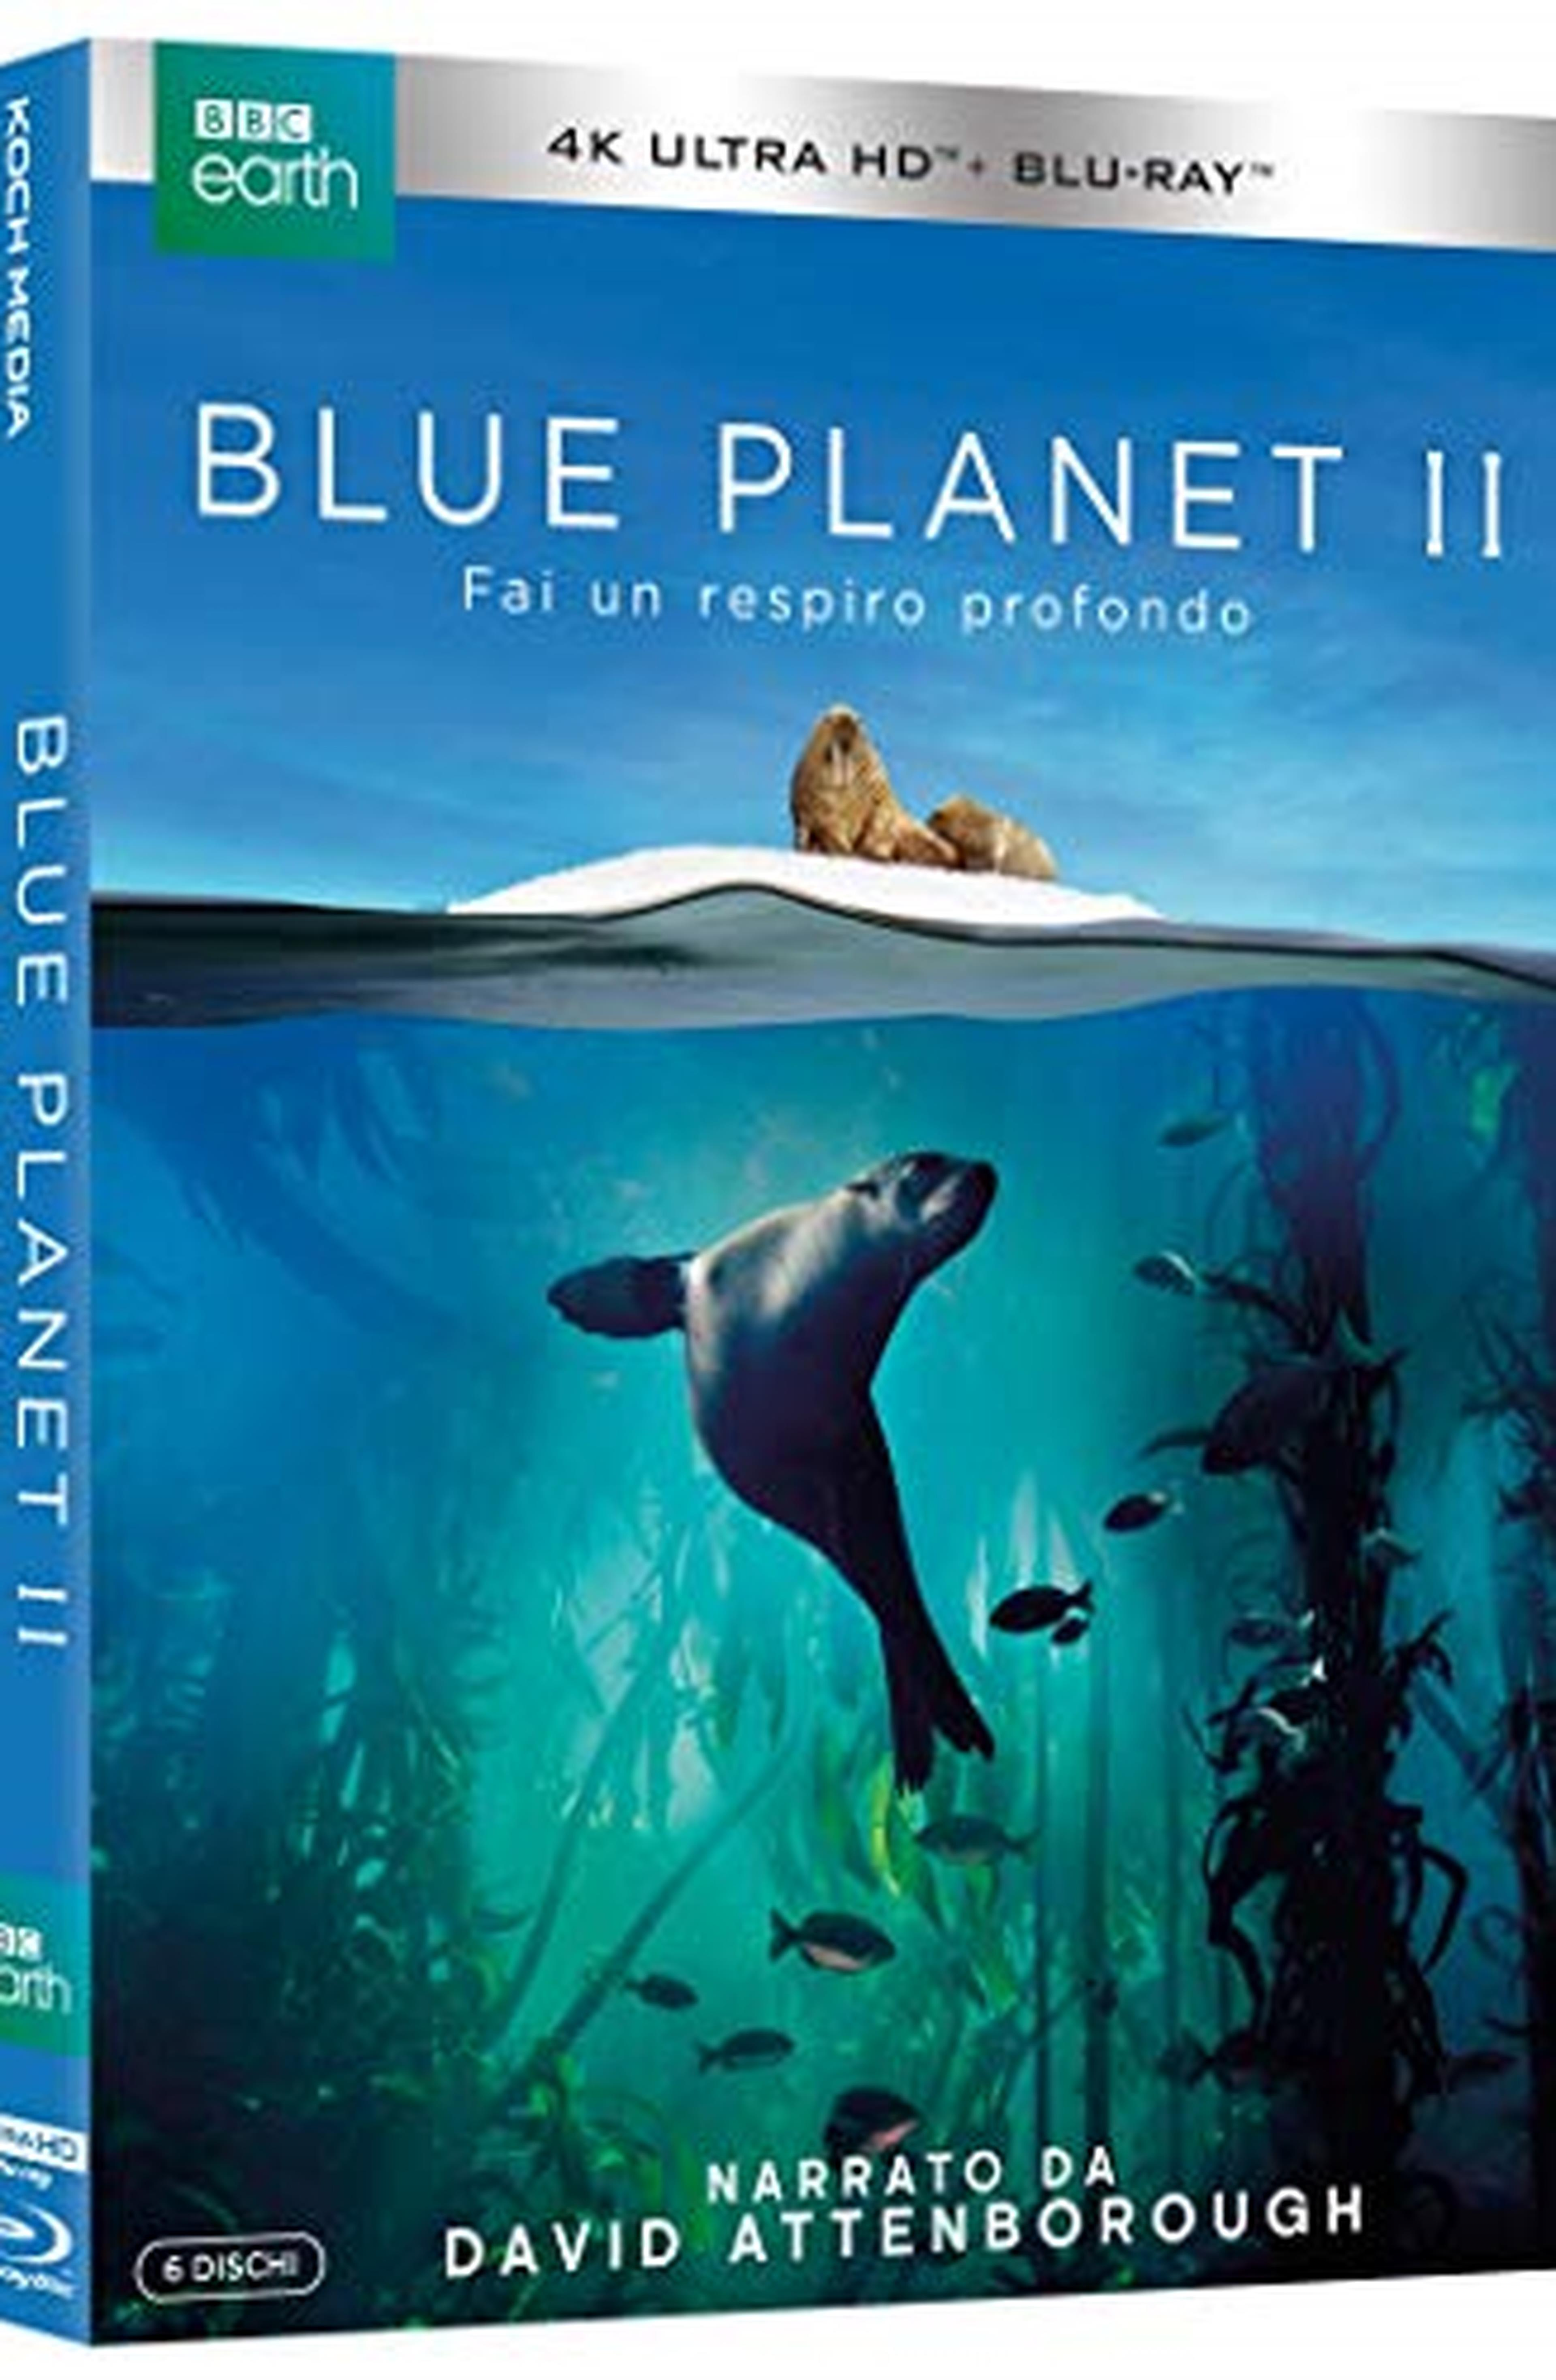 Blue Planet II (3 4K UHD + 3 Blu-ray + Booklet + 7 Cards)